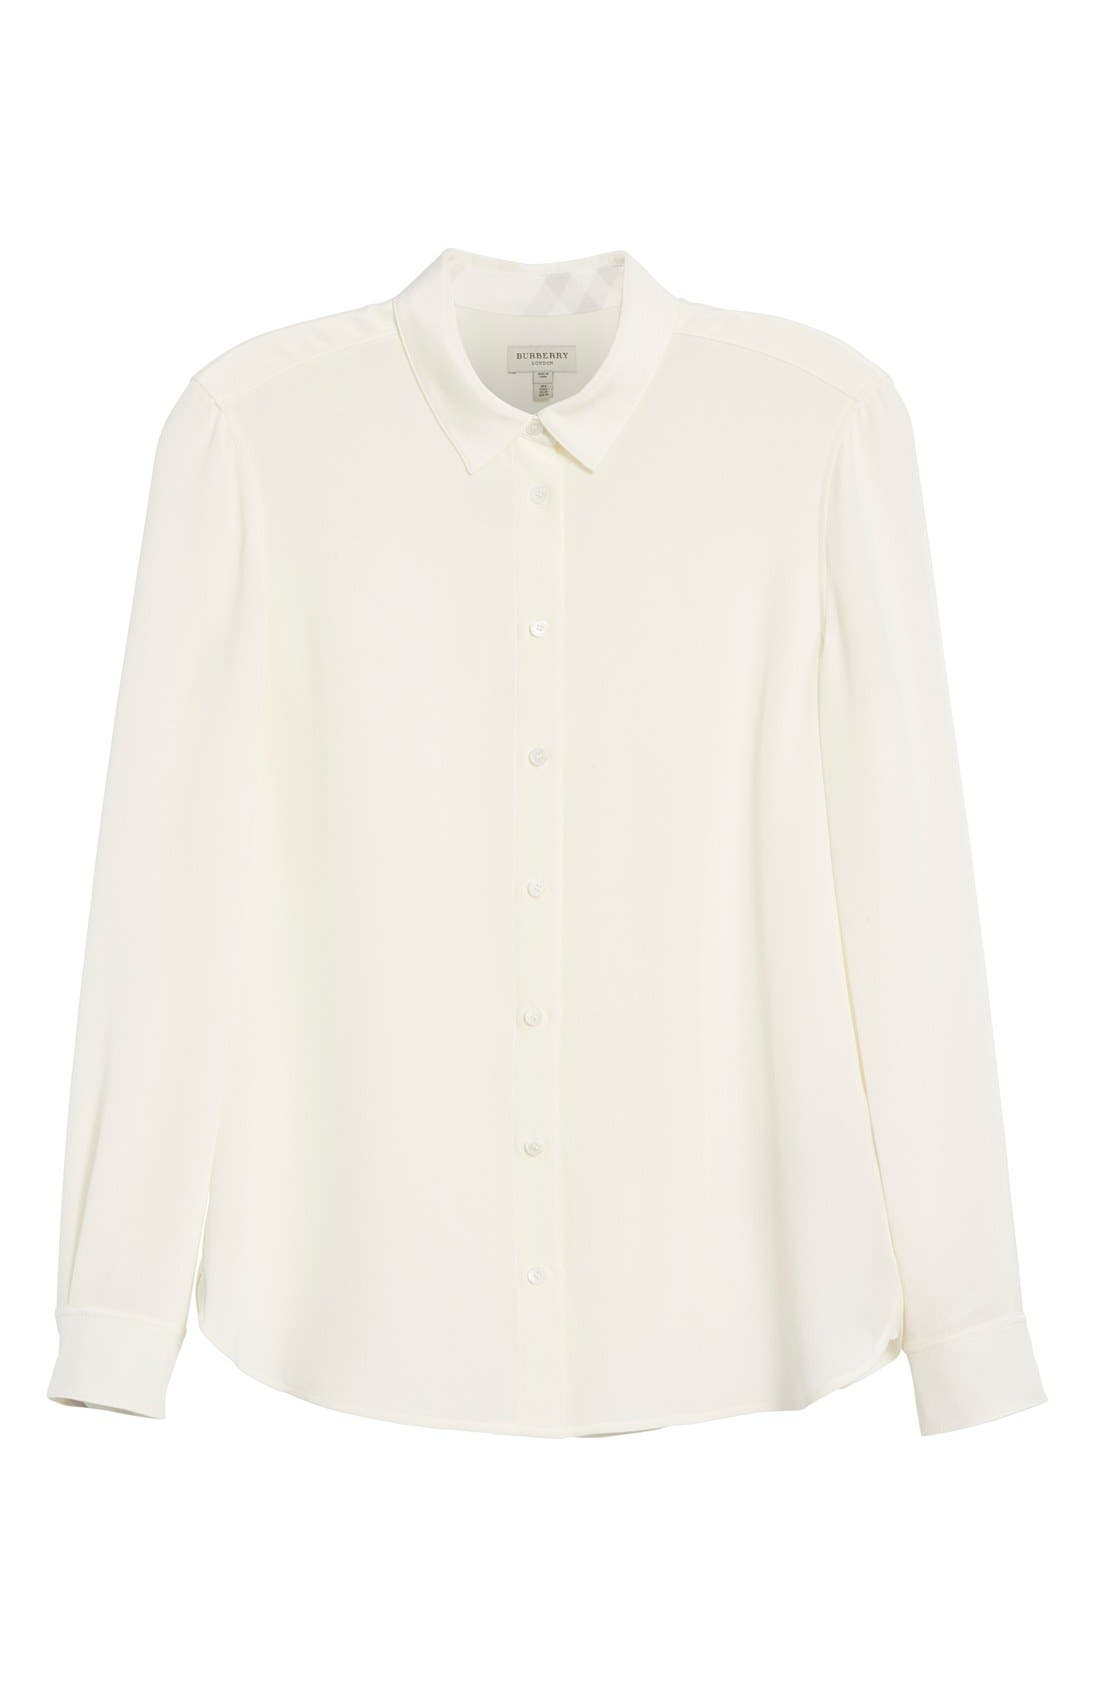 'Aster' Mulberry Silk Blouse,                             Alternate thumbnail 6, color,                             103